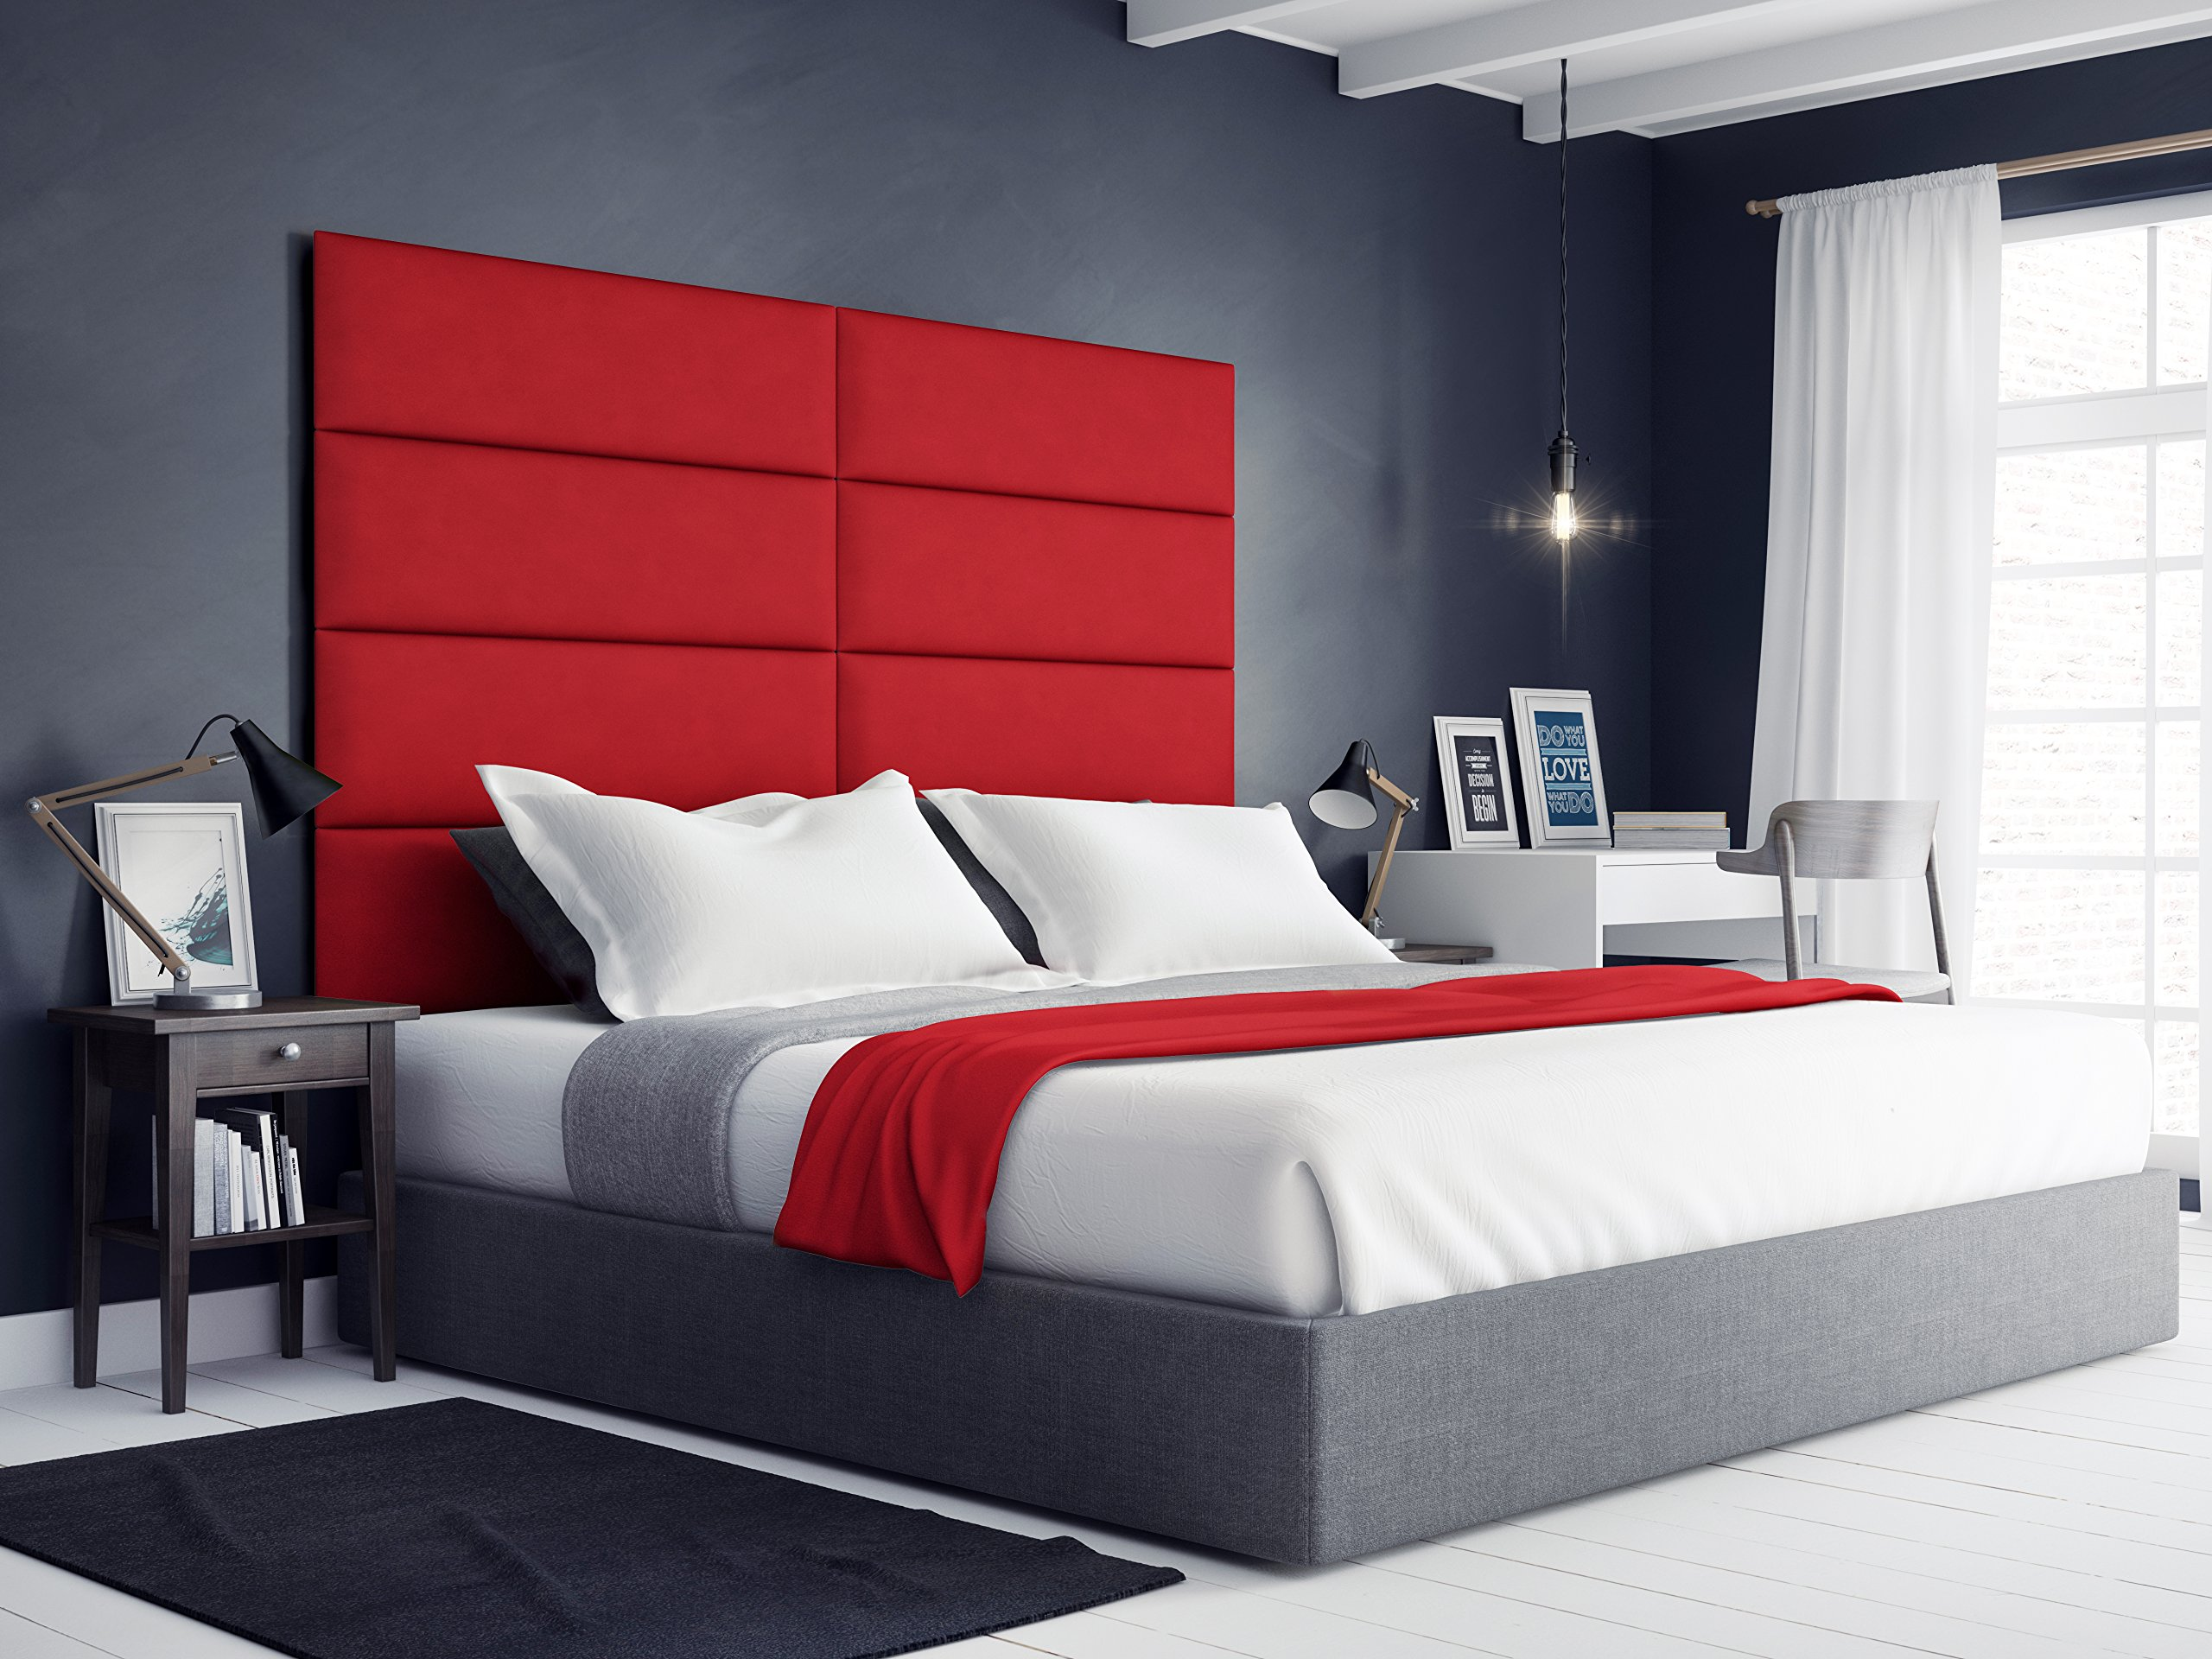 VANT Upholstered Headboards - Wall Panels - Packs Of 4 - Suede Red Melon - 39'' Wide x 11.5'' Height - Easy To Install - Twin - King Size Headboard